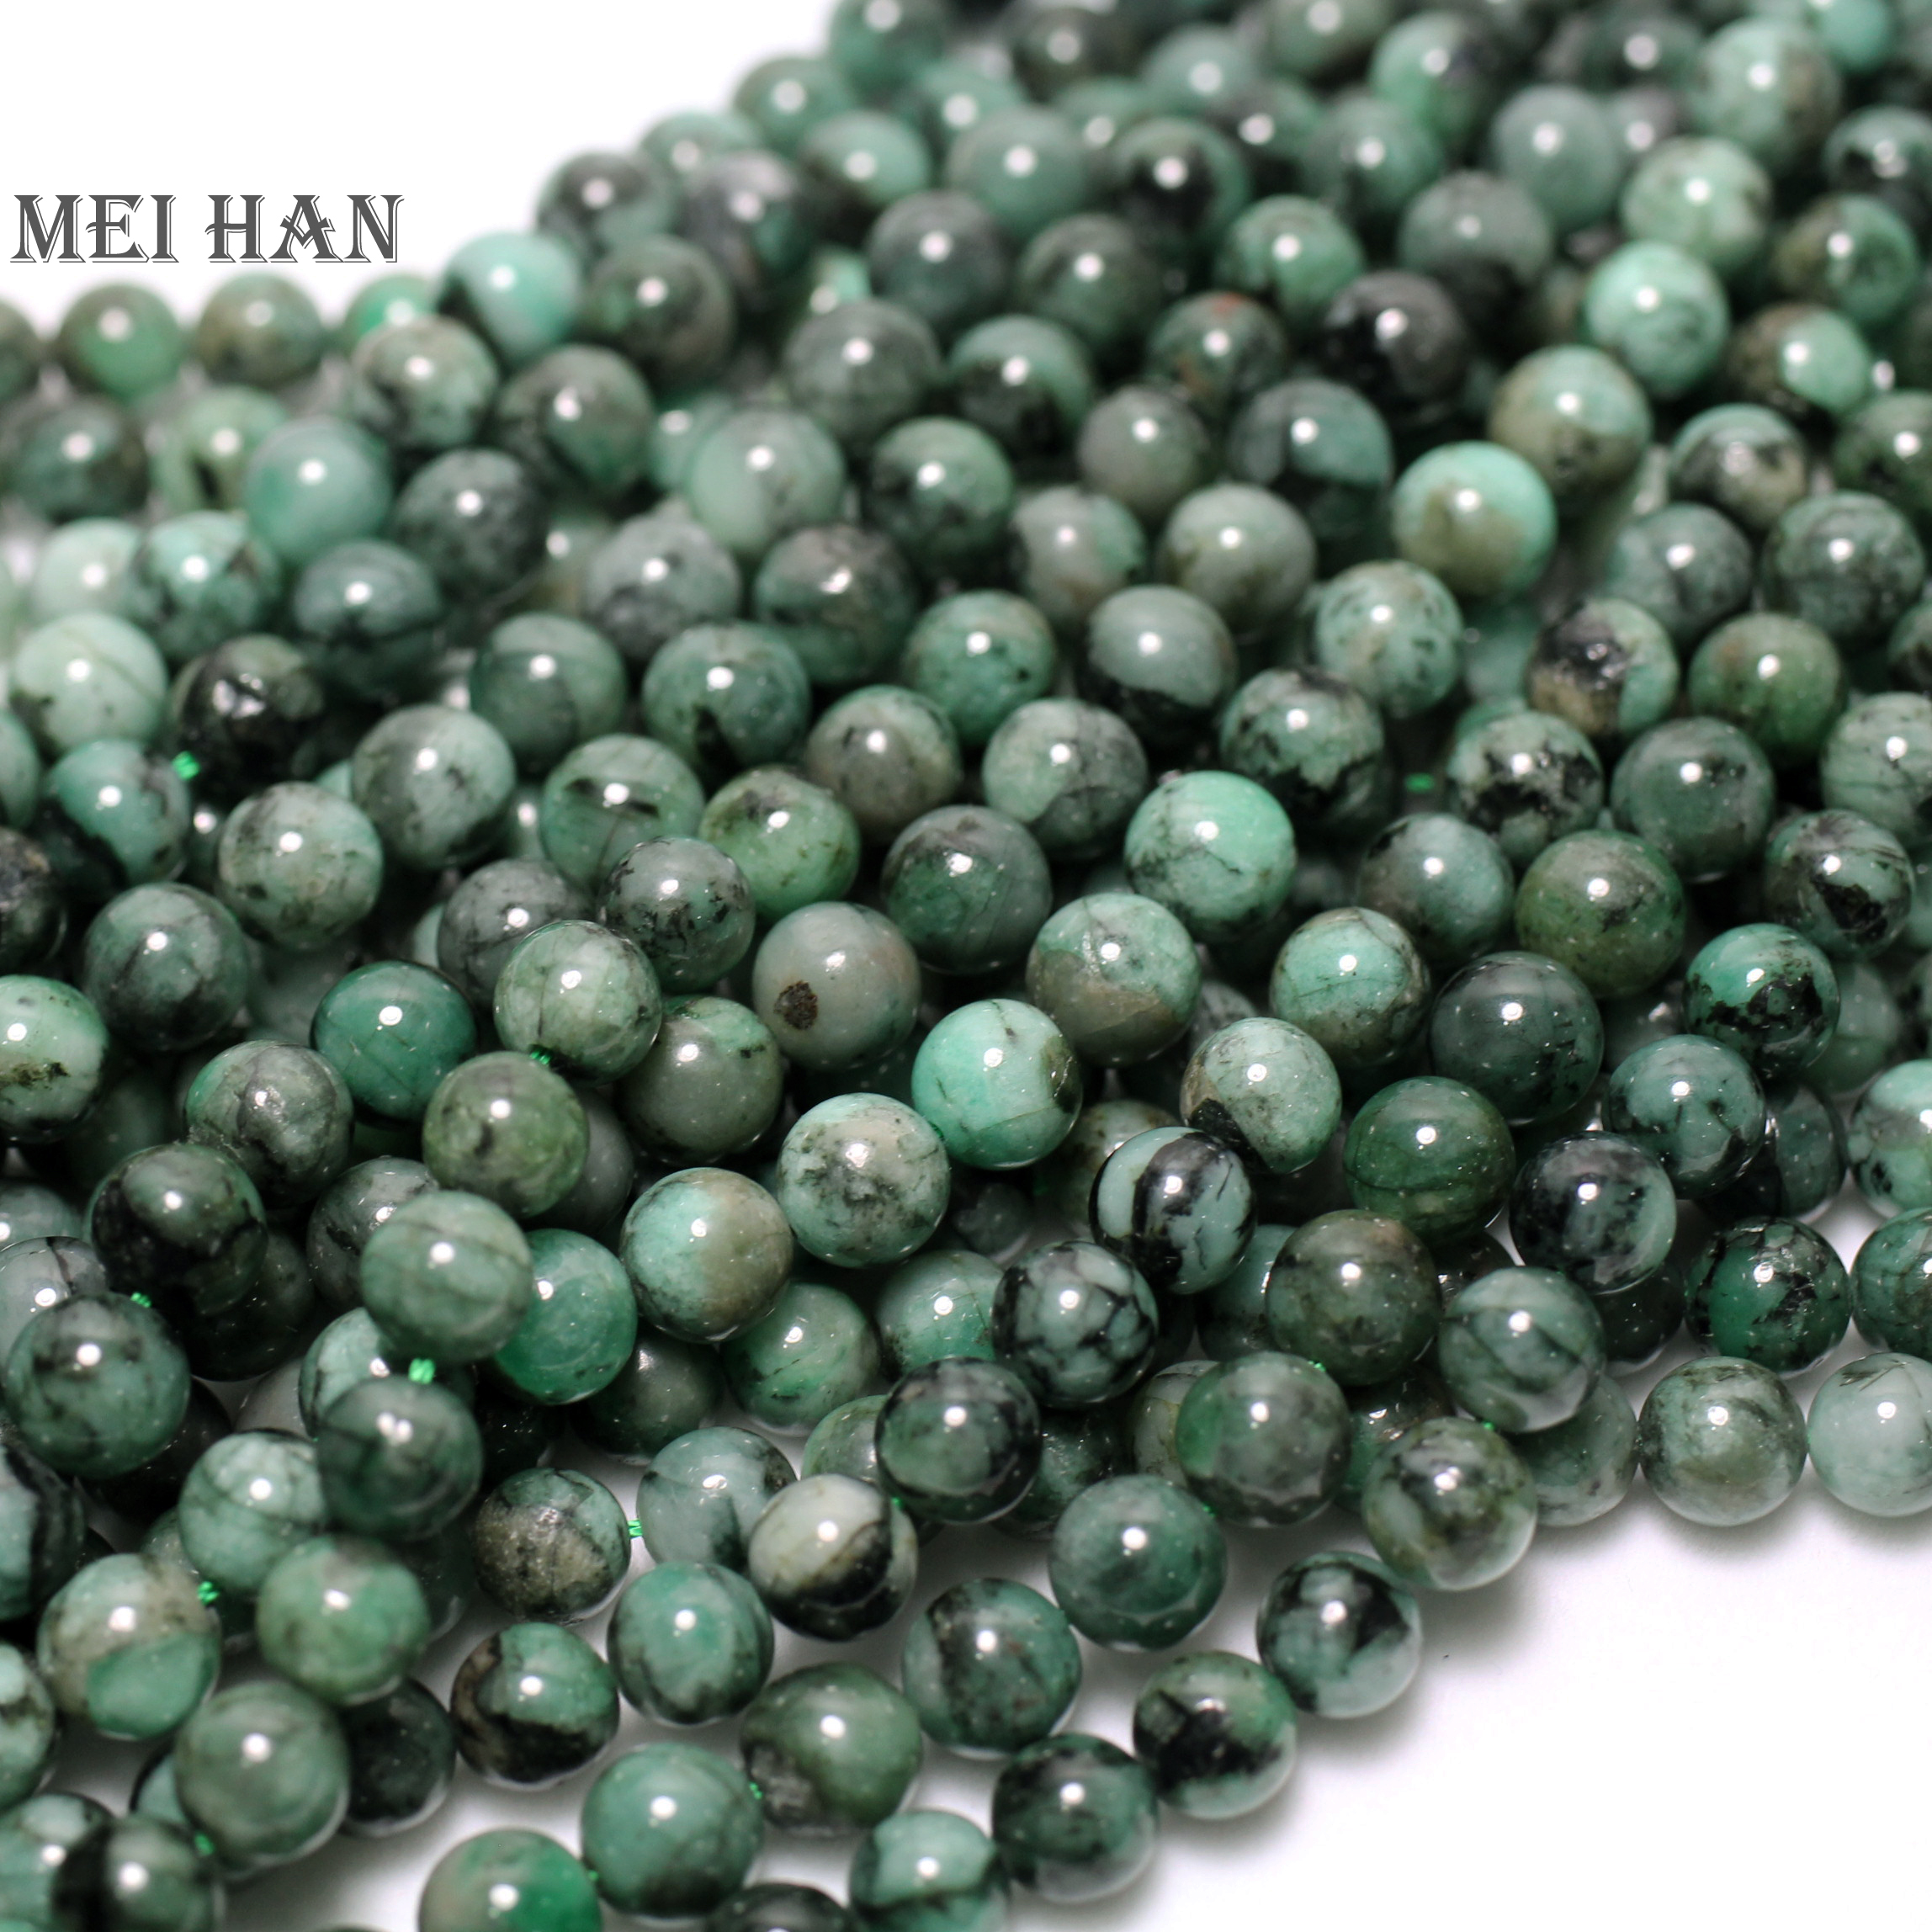 Meihan Free shipping approx 44beads set 34g natural 8 8 5mm Emerald smooth round beads for